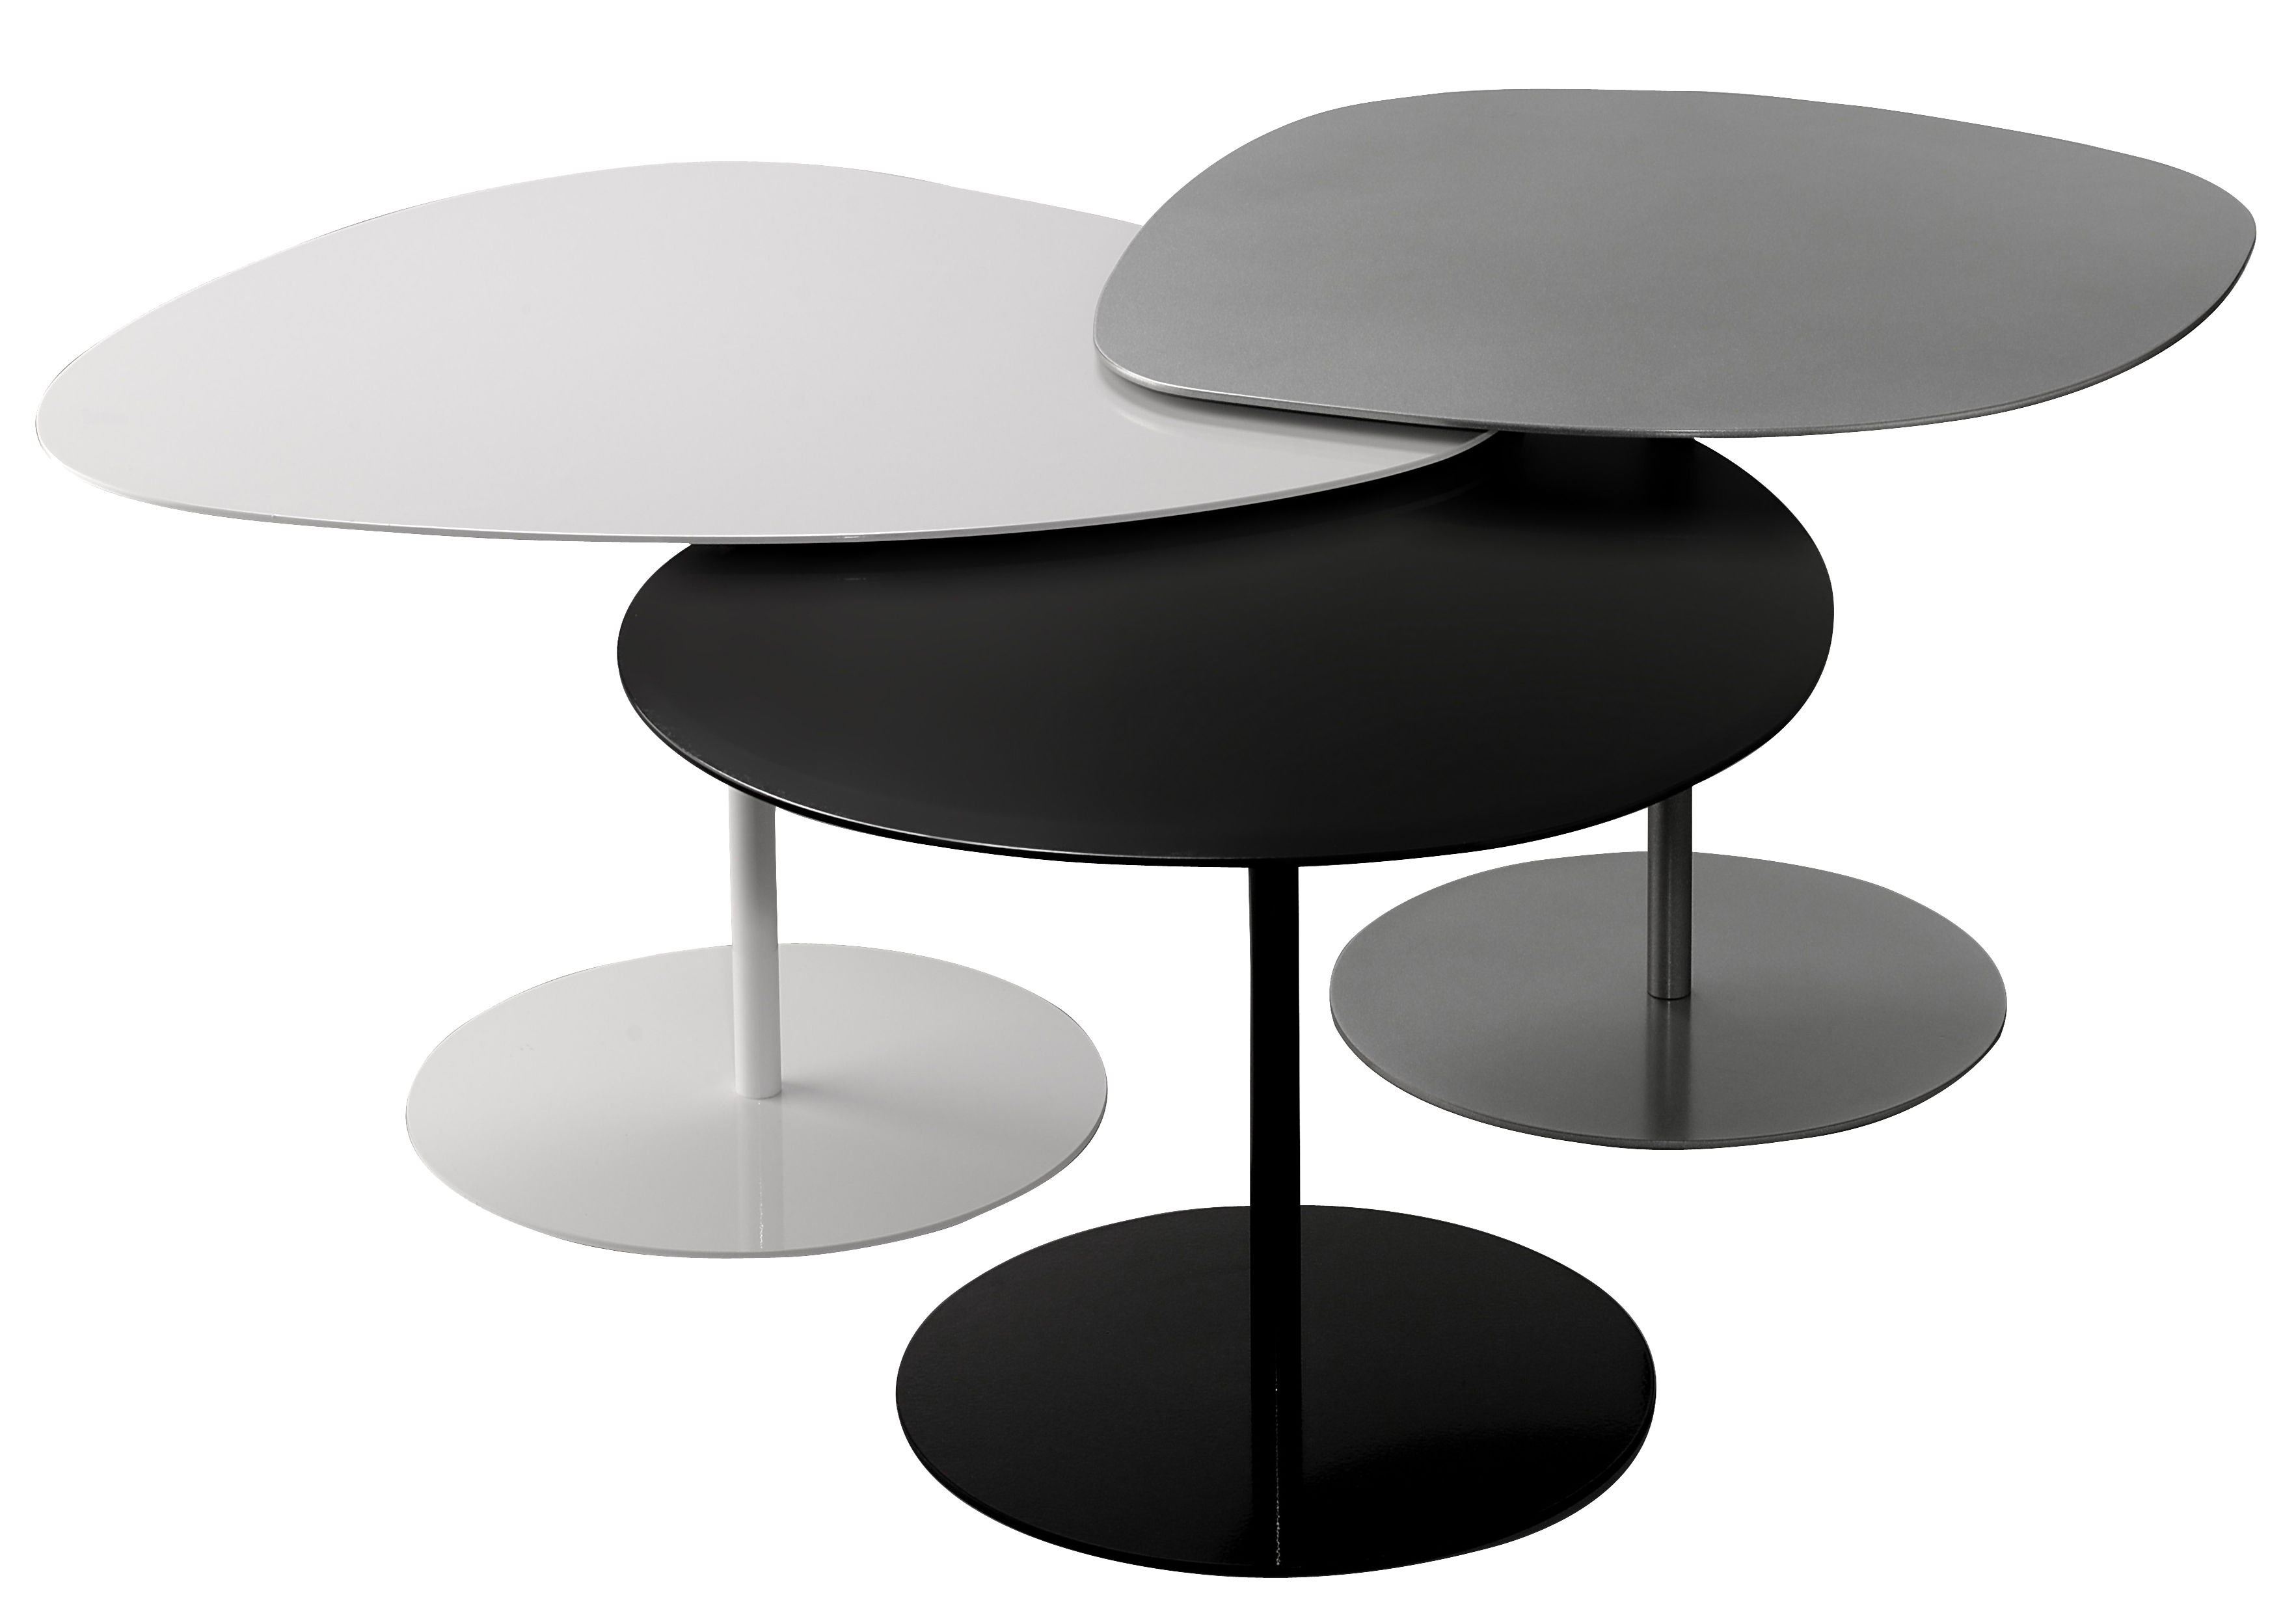 table basse 3 galets 59 x 63 h 40 2 cm blanc mati re grise made in design. Black Bedroom Furniture Sets. Home Design Ideas